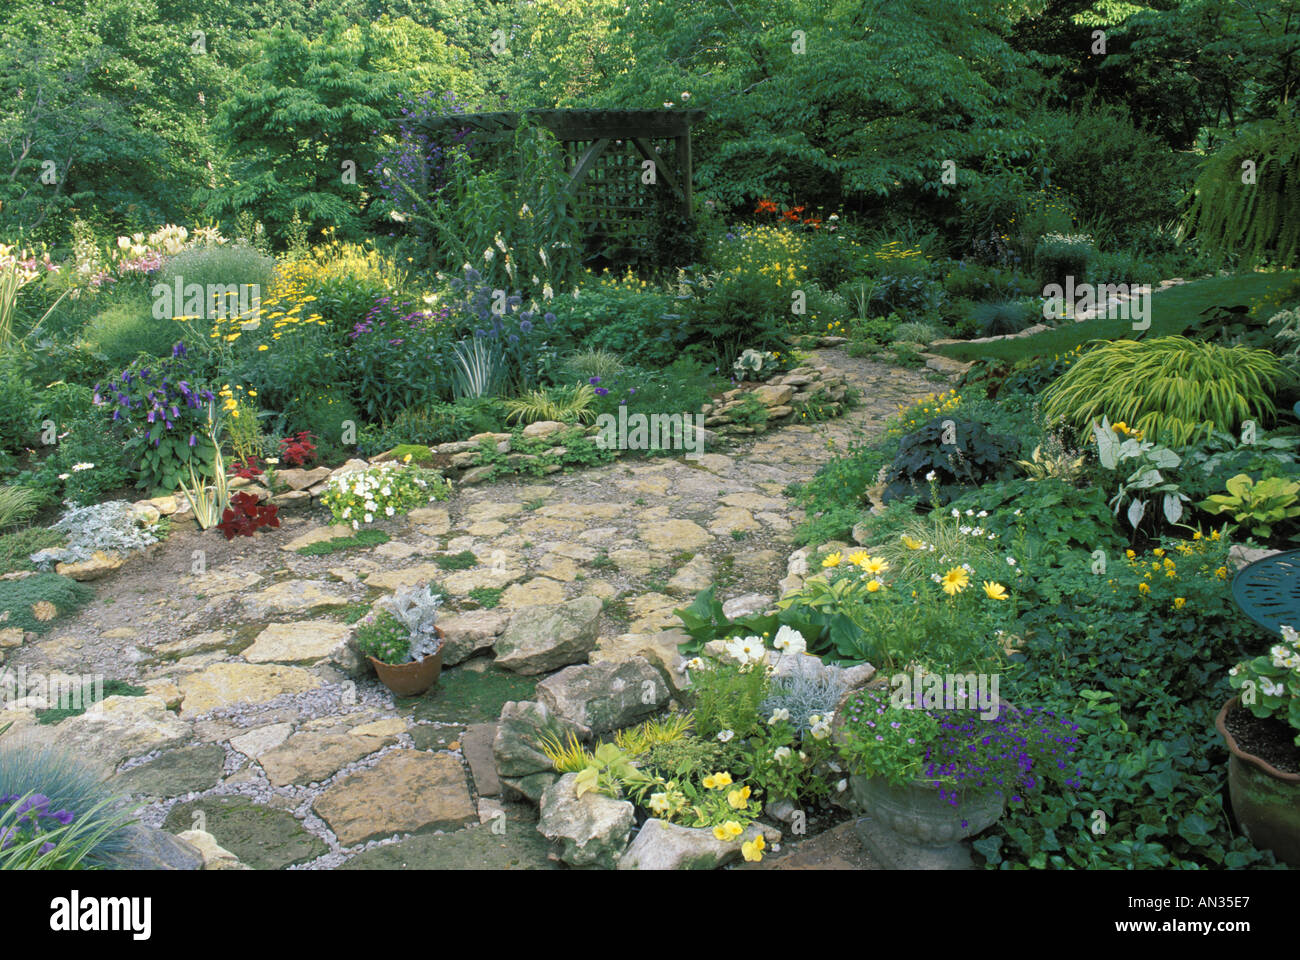 Flagstone Path With Stone Wall In Flower Garden Leads Through Wood Arbor  With Seat Missouri USA